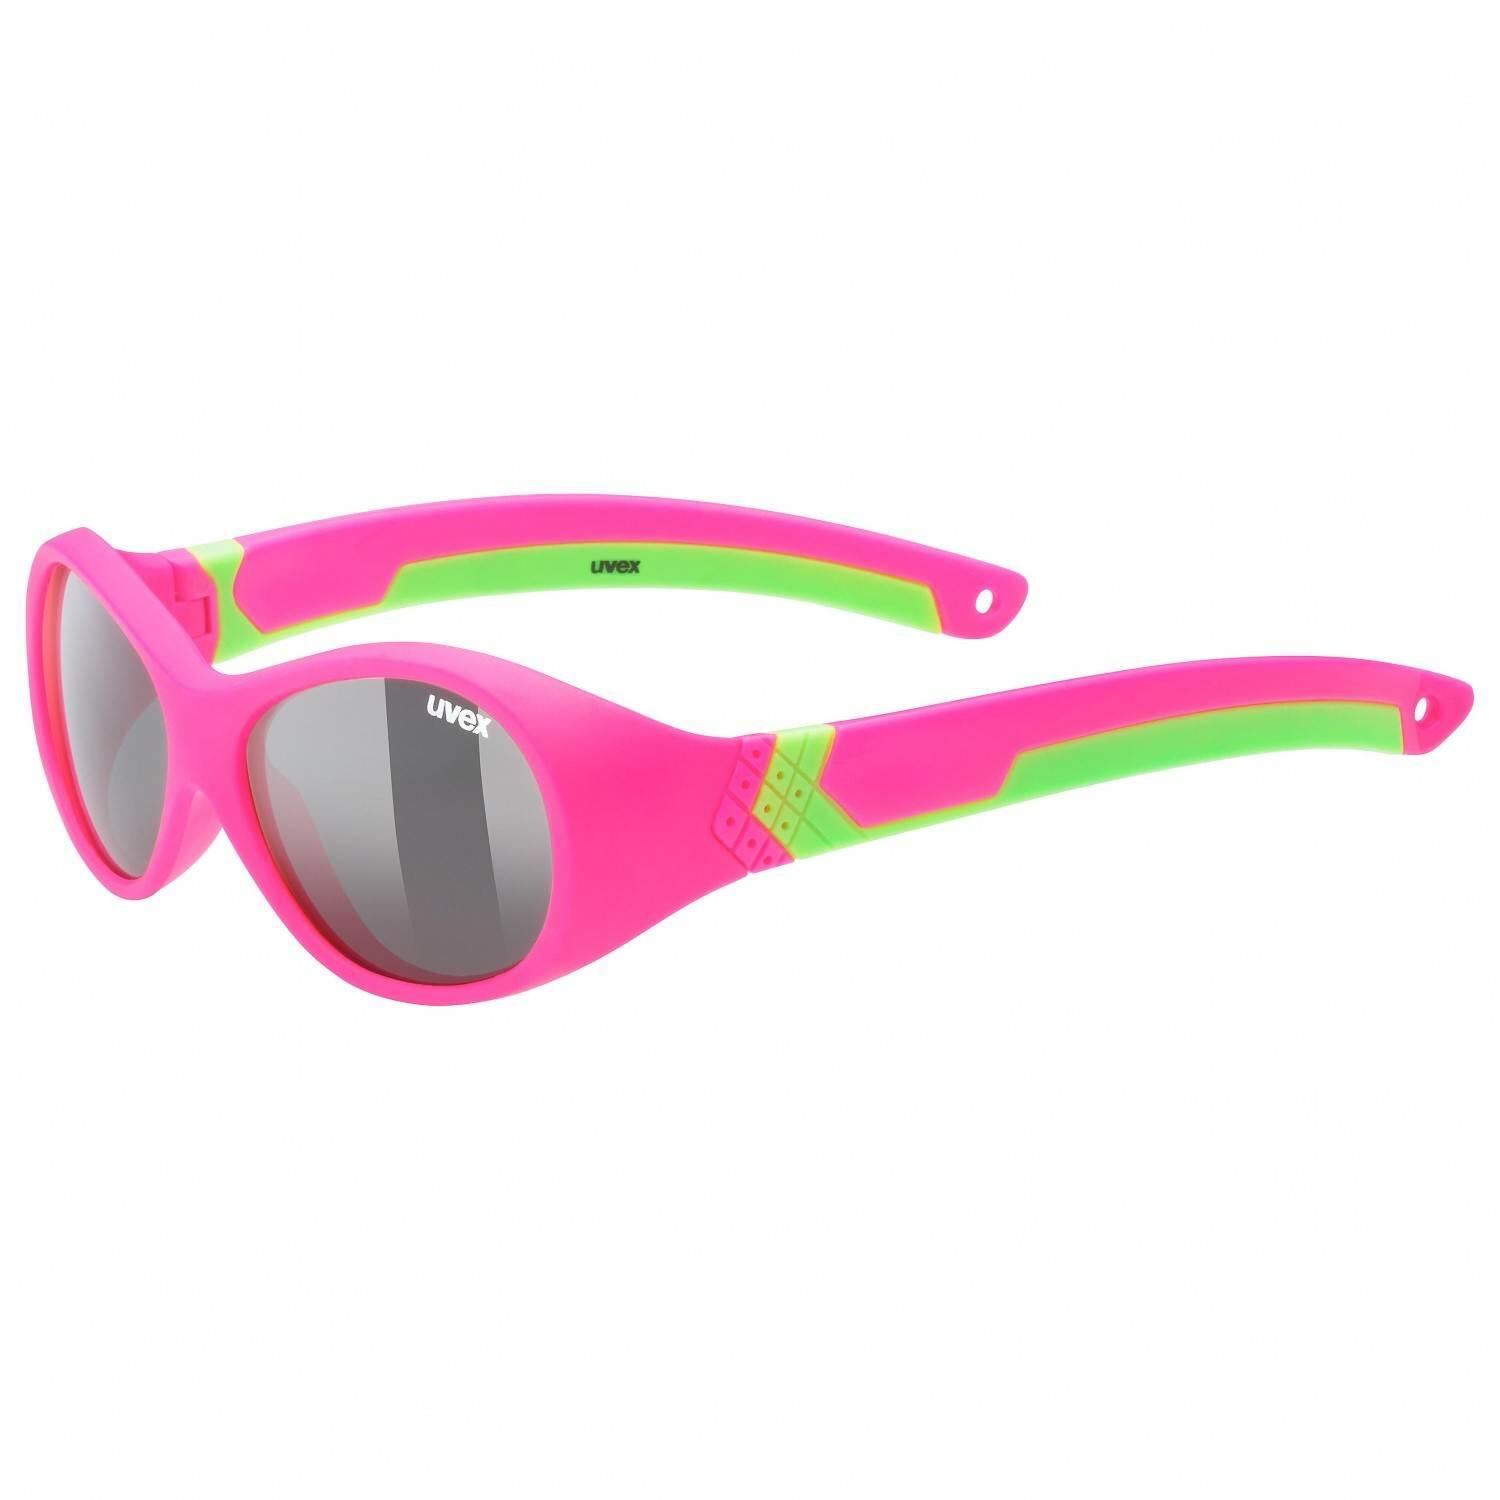 uvex-sportstyle-510-kinder-sportbrille-farbe-3716-pink-green-mat-mirror-yellow-s3-